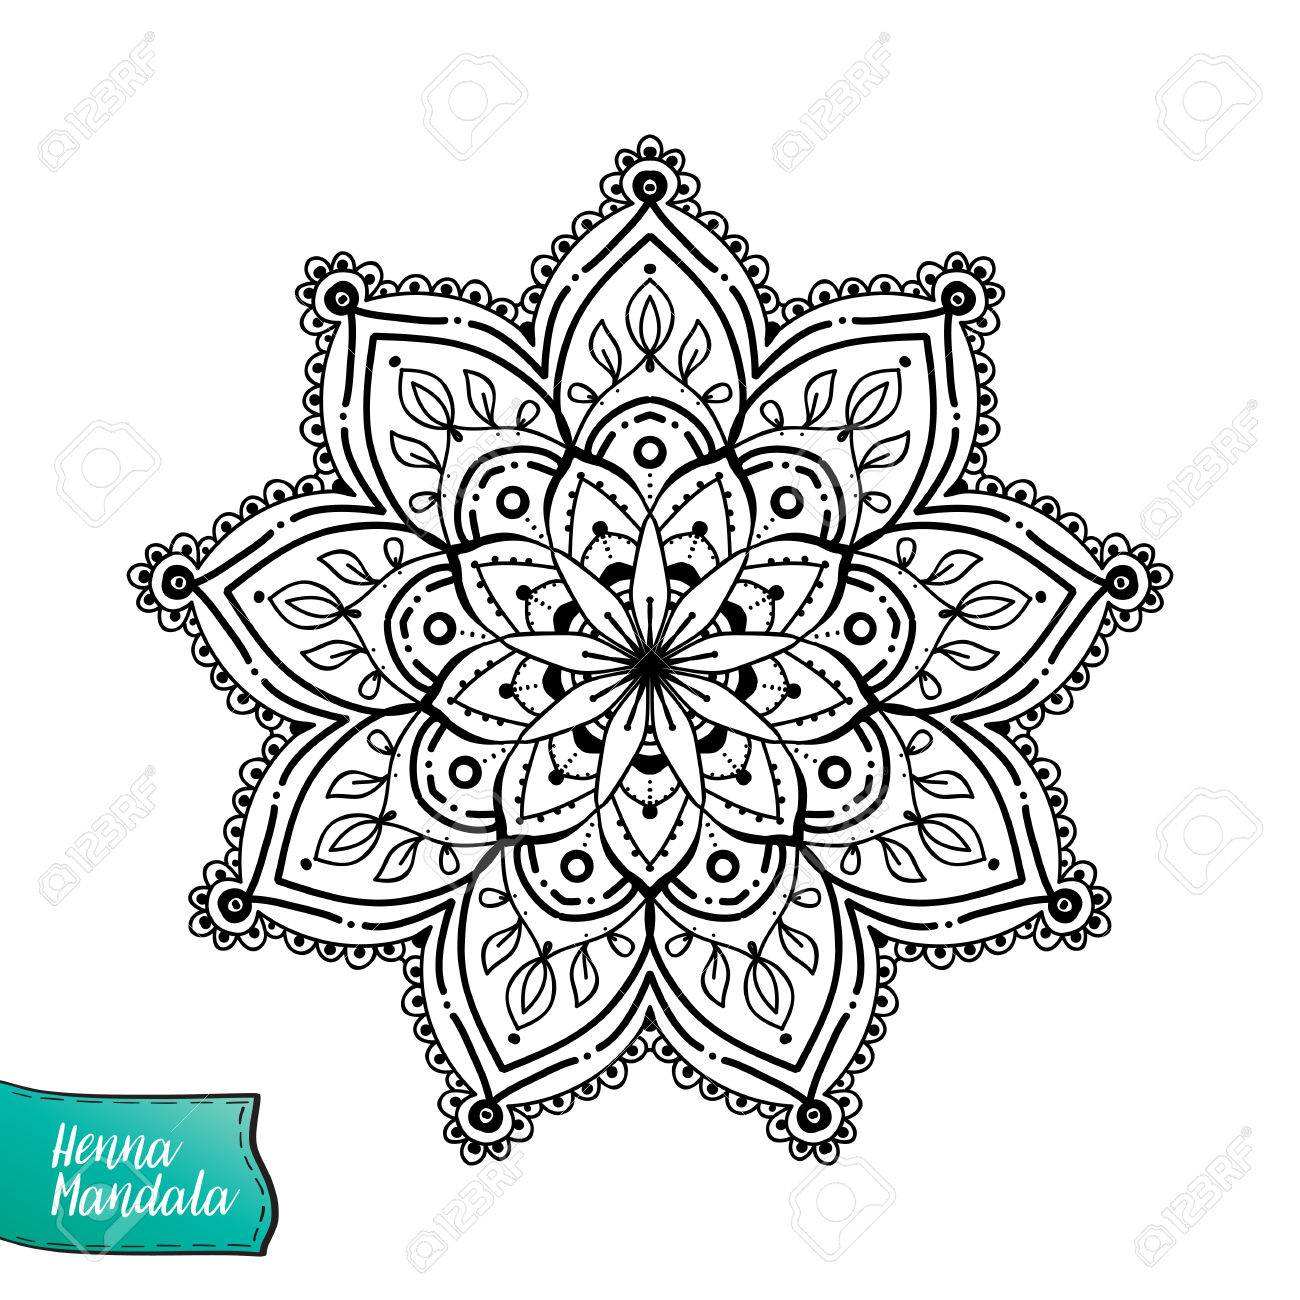 Henna Drawing At Getdrawings Com Free For Personal Use Henna